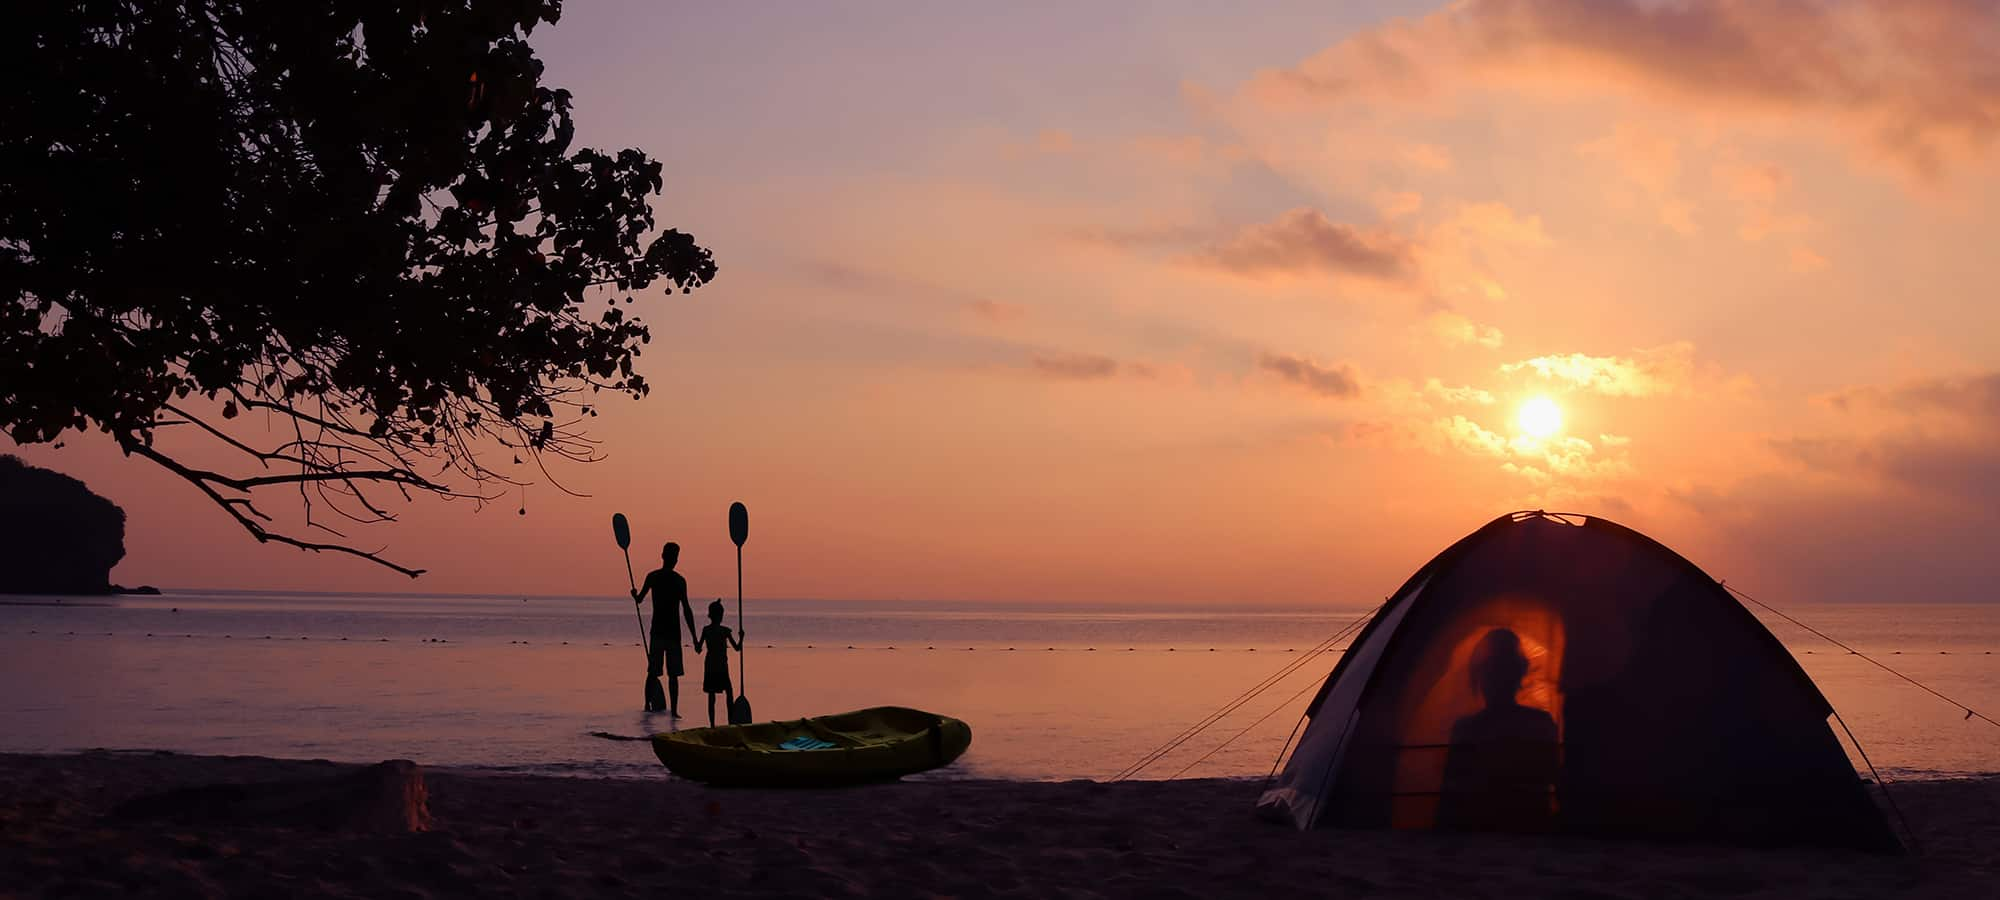 Best Camping Spots in Cairns and Surrounds